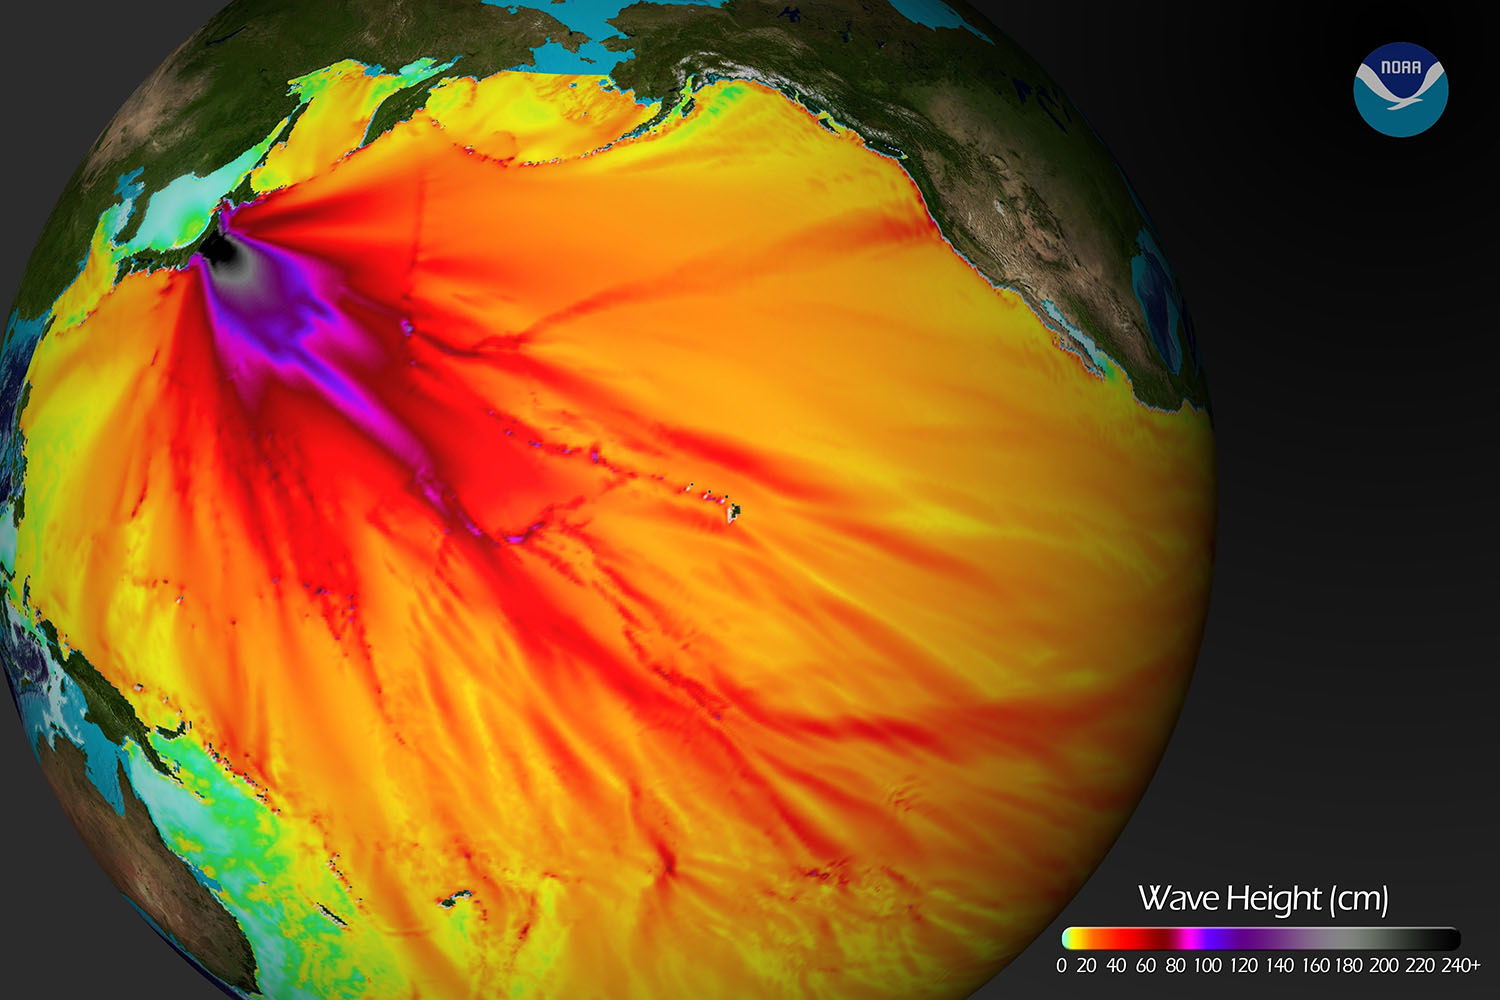 March 11, 2011 Japan tsunami event maximum wave amplitude map.  Filled colors show maximum computed tsunami amplitude in cm during 24 hours of wave propagation.